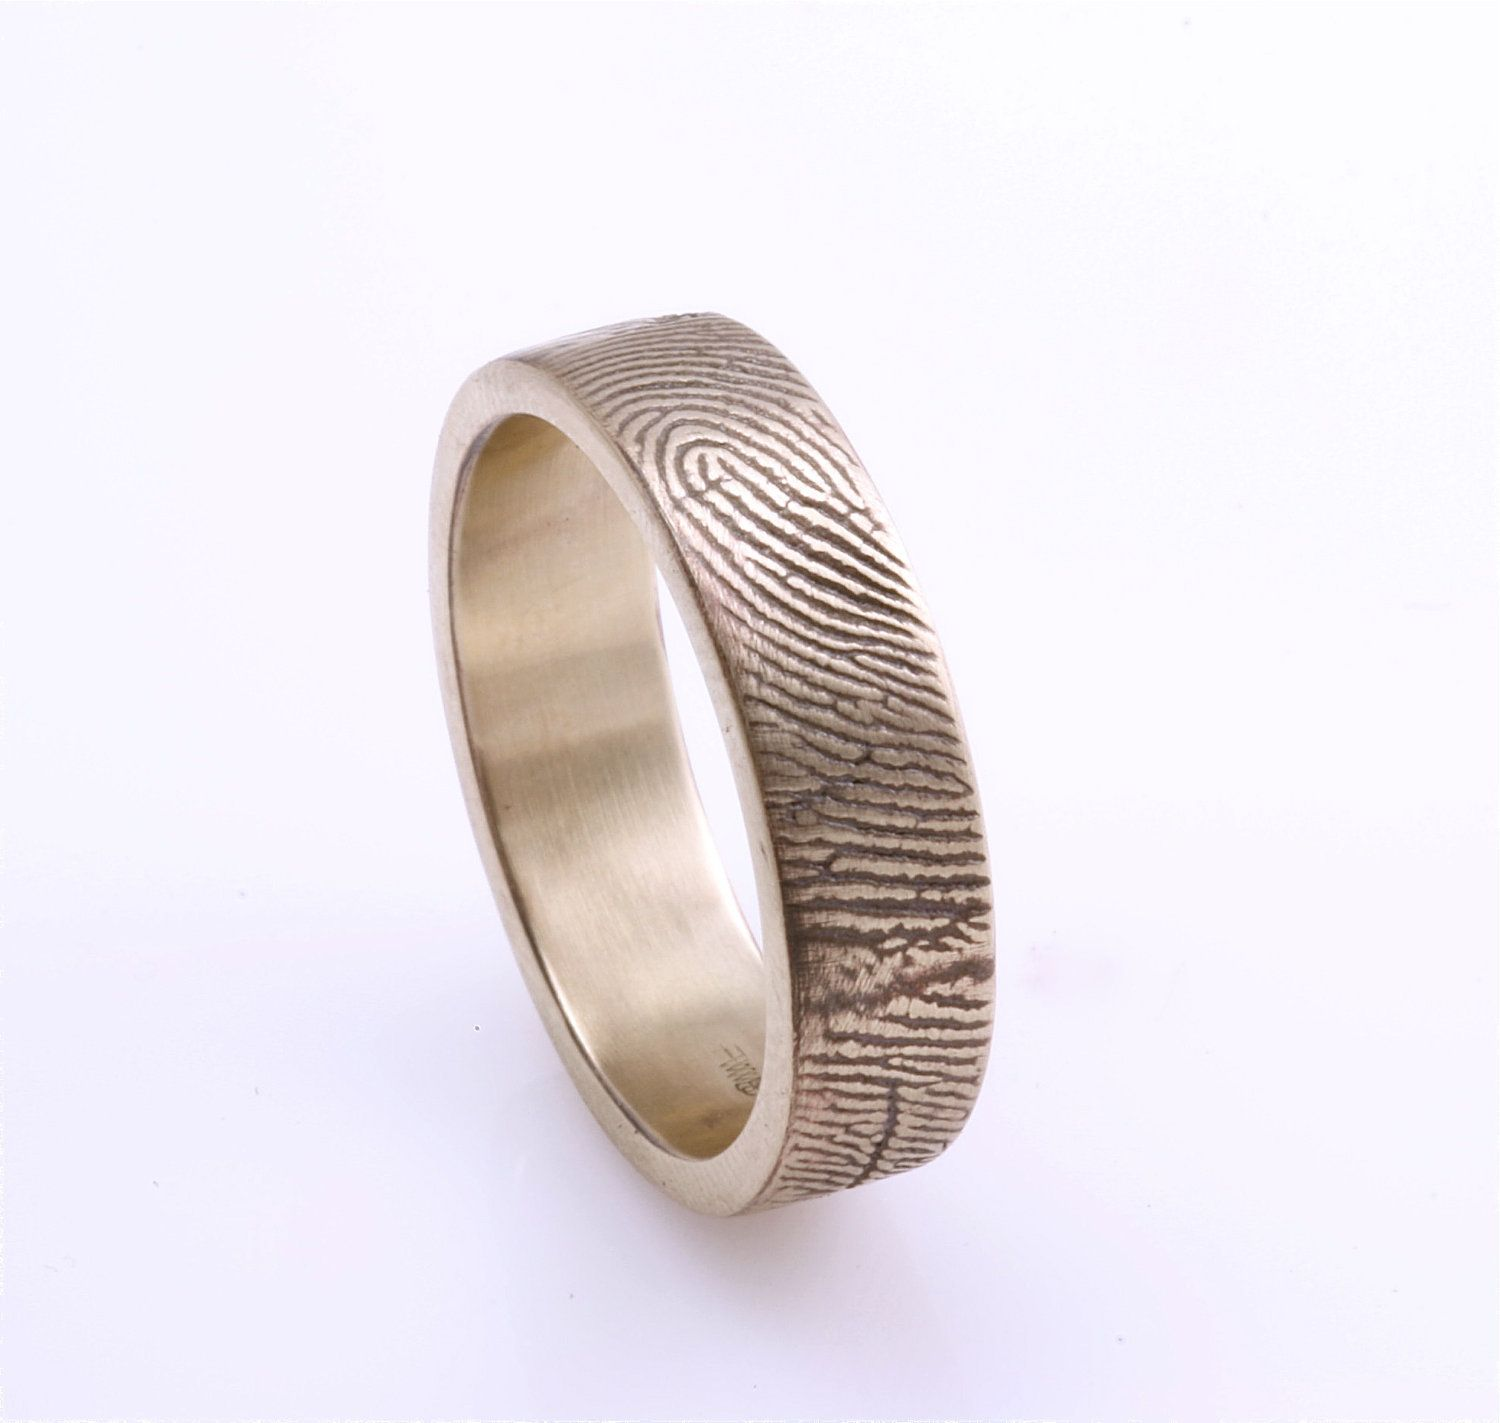 ideas elegant concept of wedding fresh vancouver new ring inspirations fingerprint rings